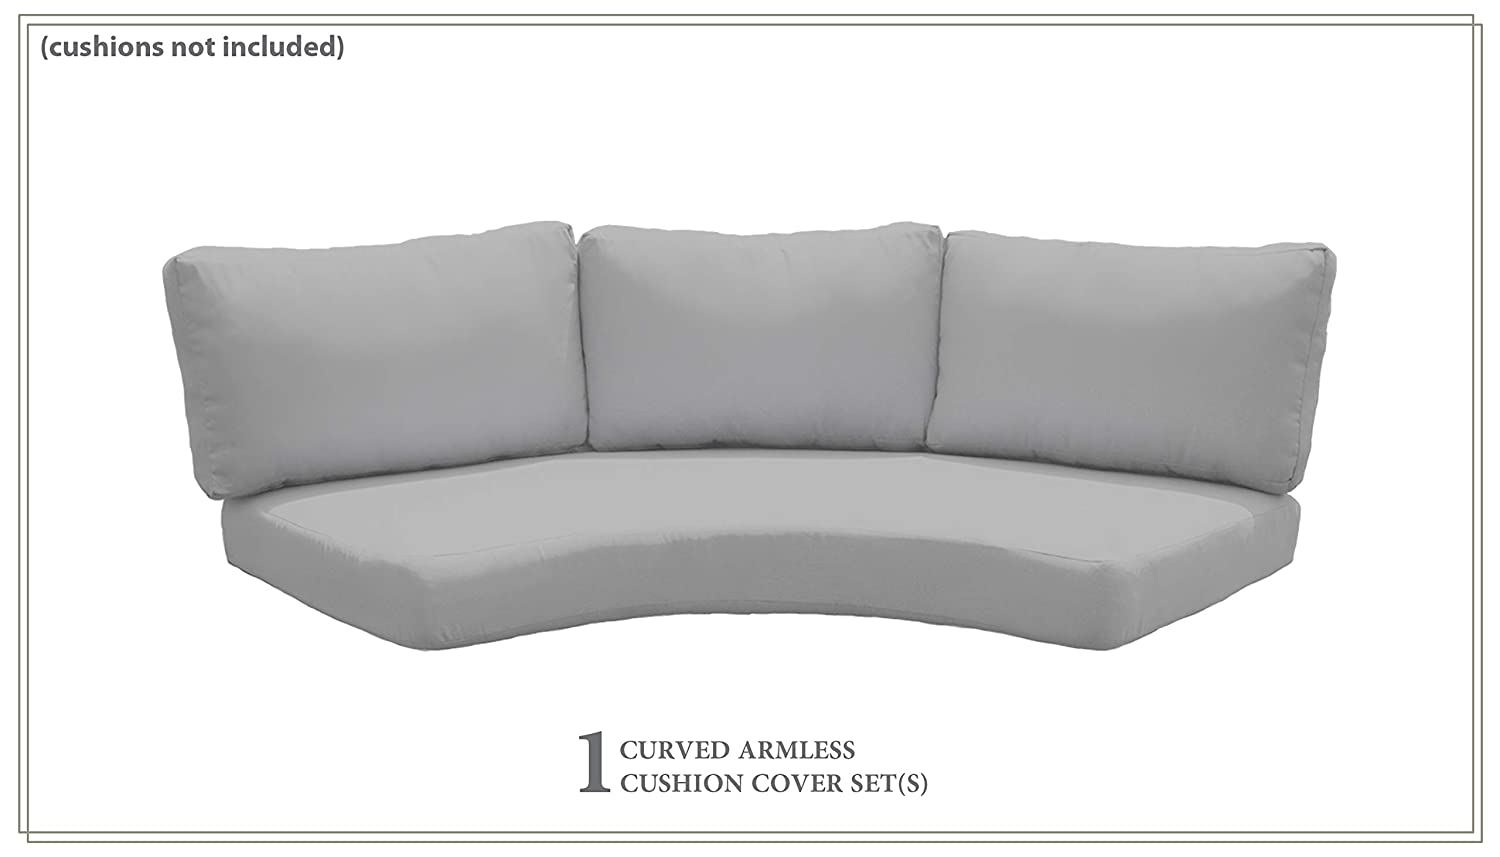 TK Classics Covers for High-Back Curved Armless Sofa Cushions 6 inches Thick in Tangerine